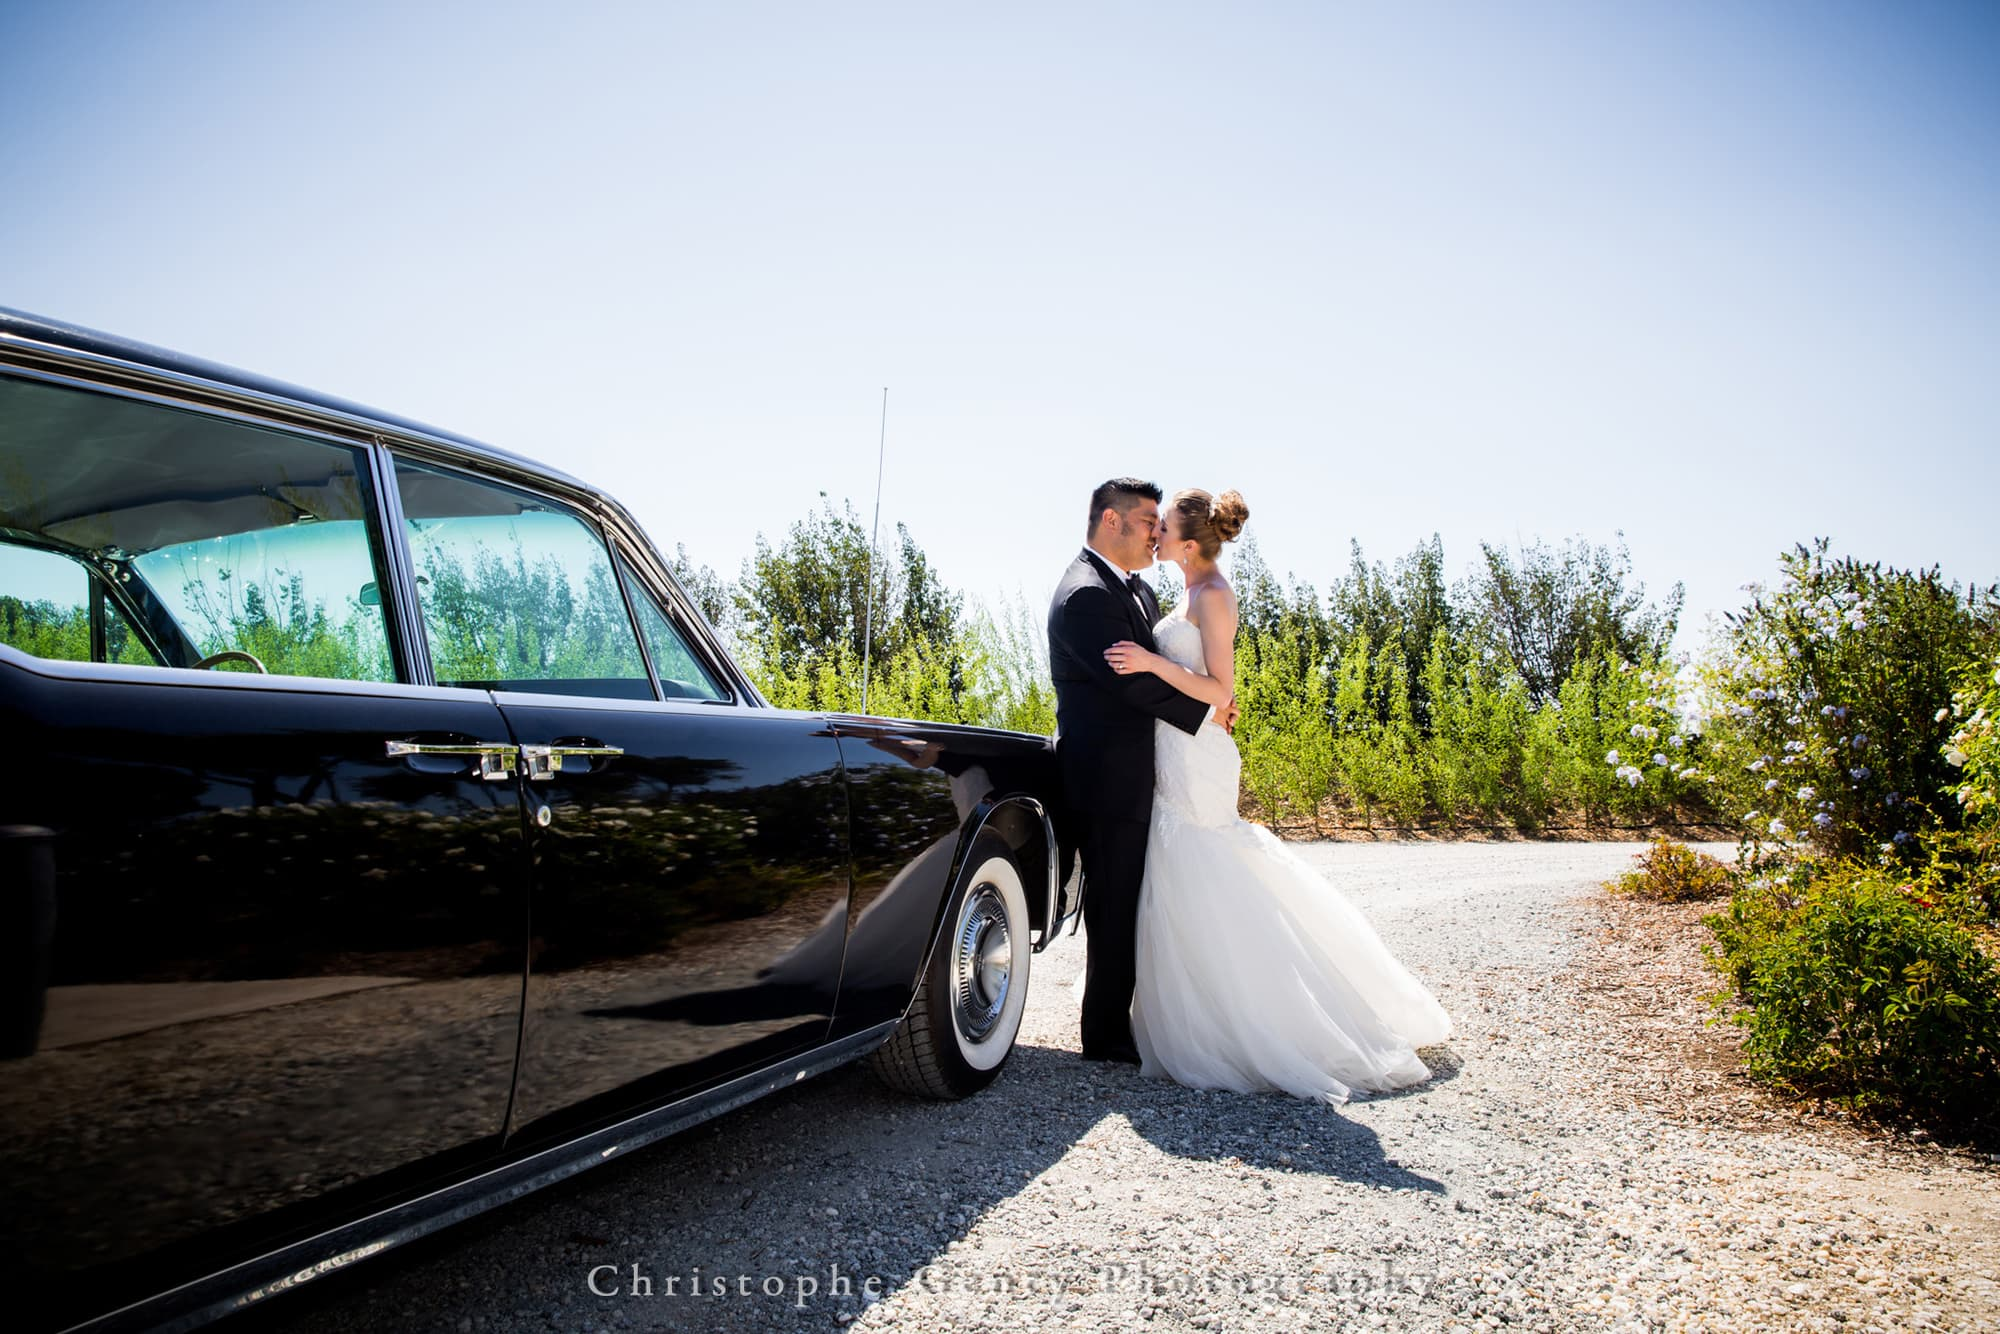 Wedding photography at Leal Vineyards in Holister, CA